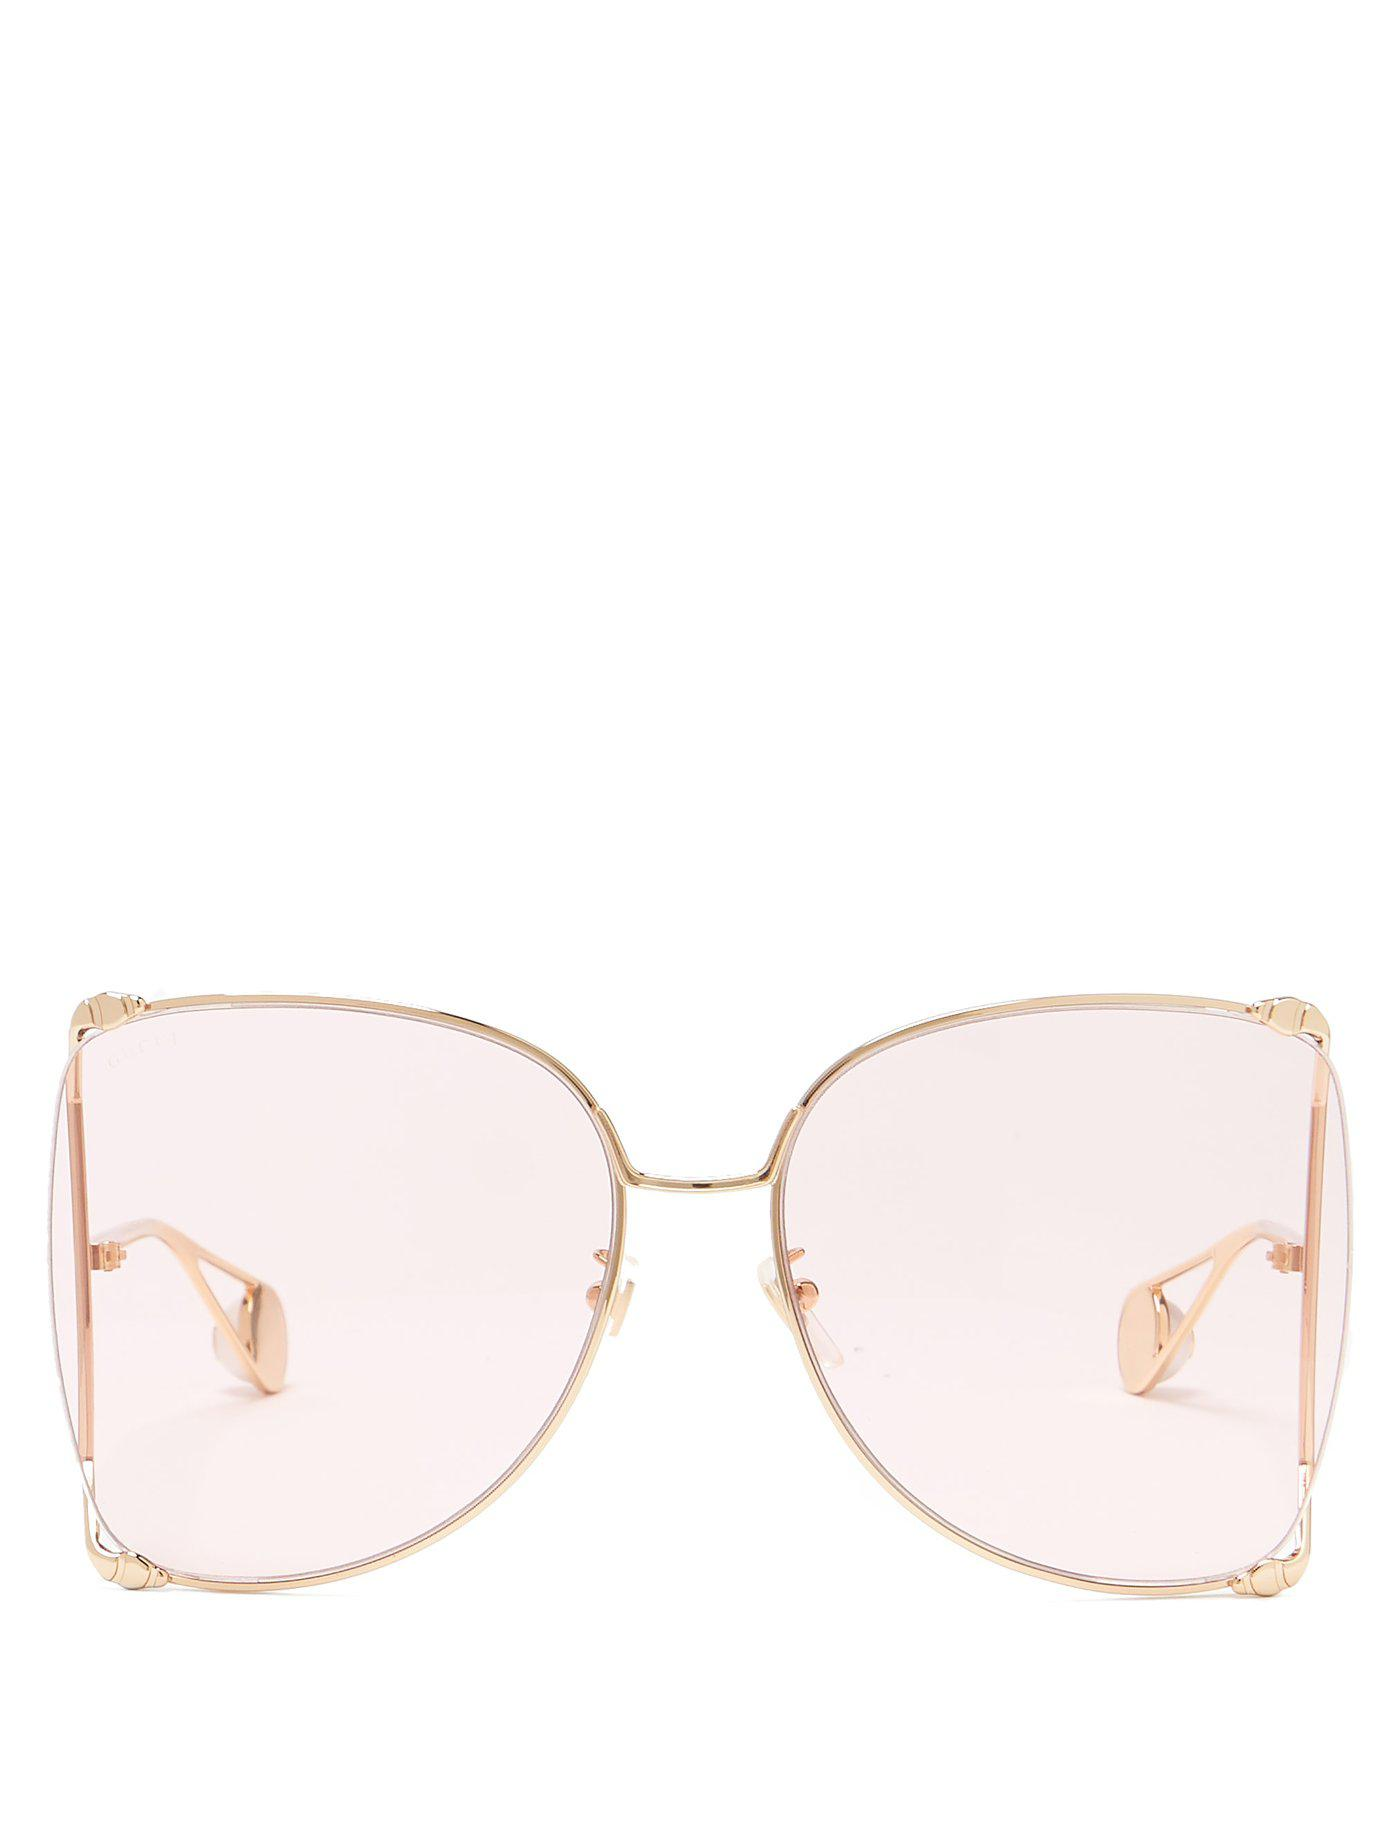 237297481d Lyst - Gucci Oversized Butterfly Frame Gg Sunglasses in Pink - Save 35%